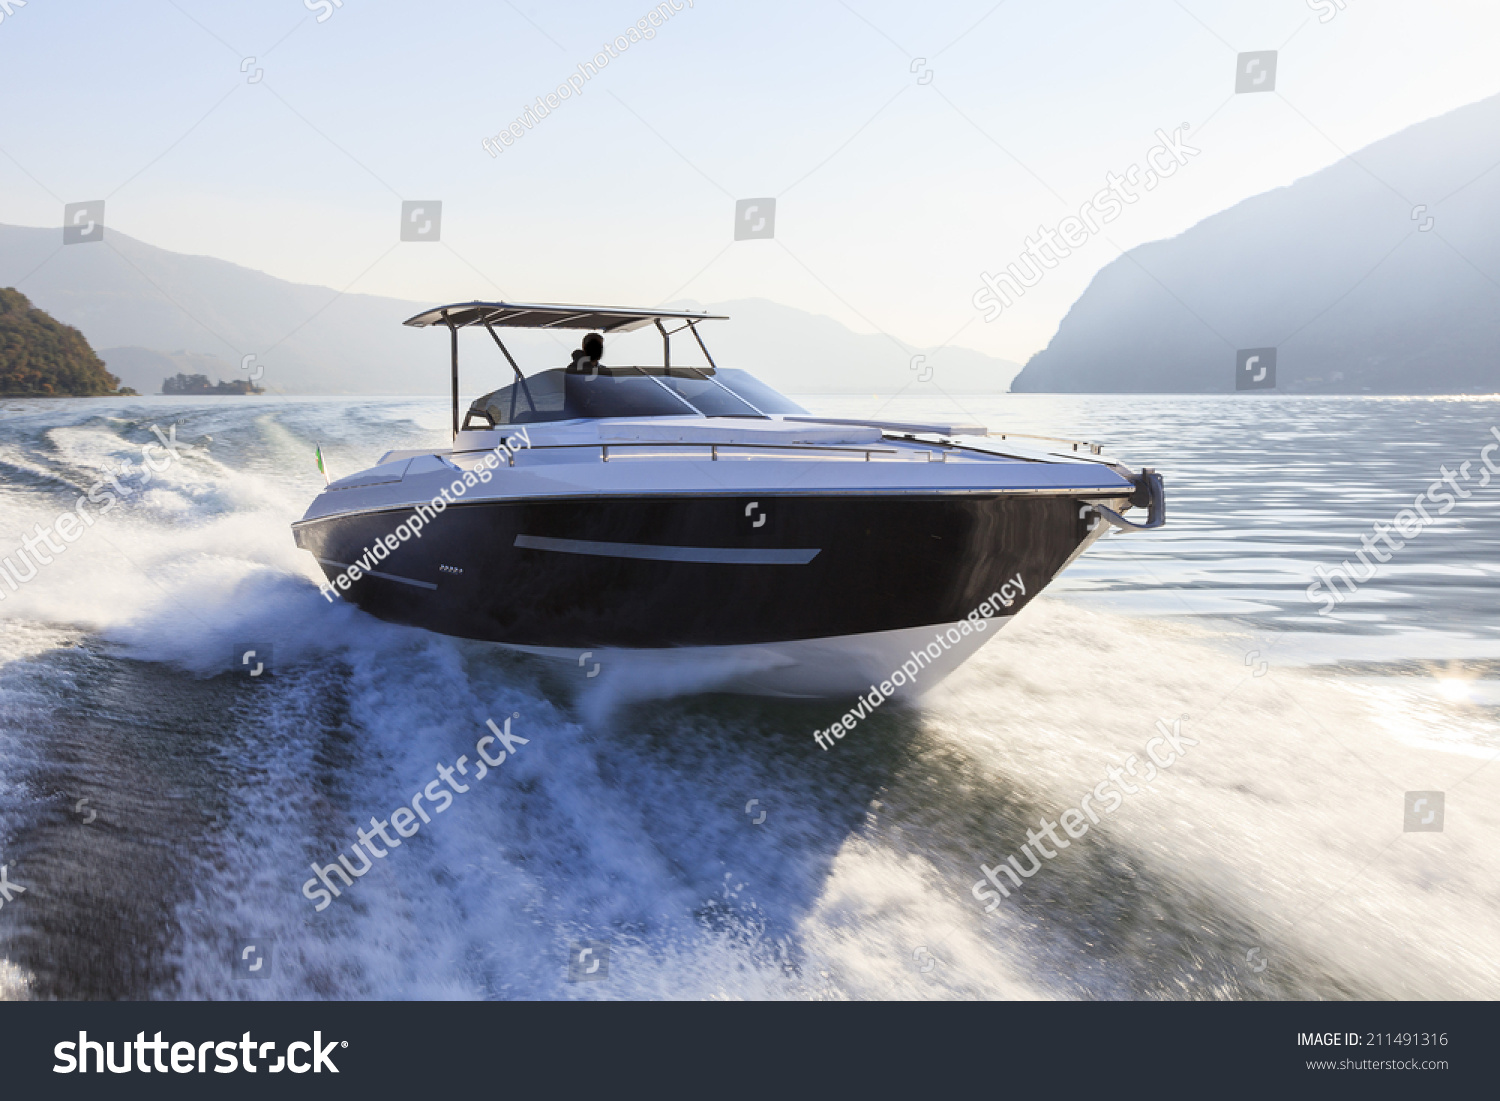 Motor Boat Rio Yachts Best Italian Stock Photo 211491316